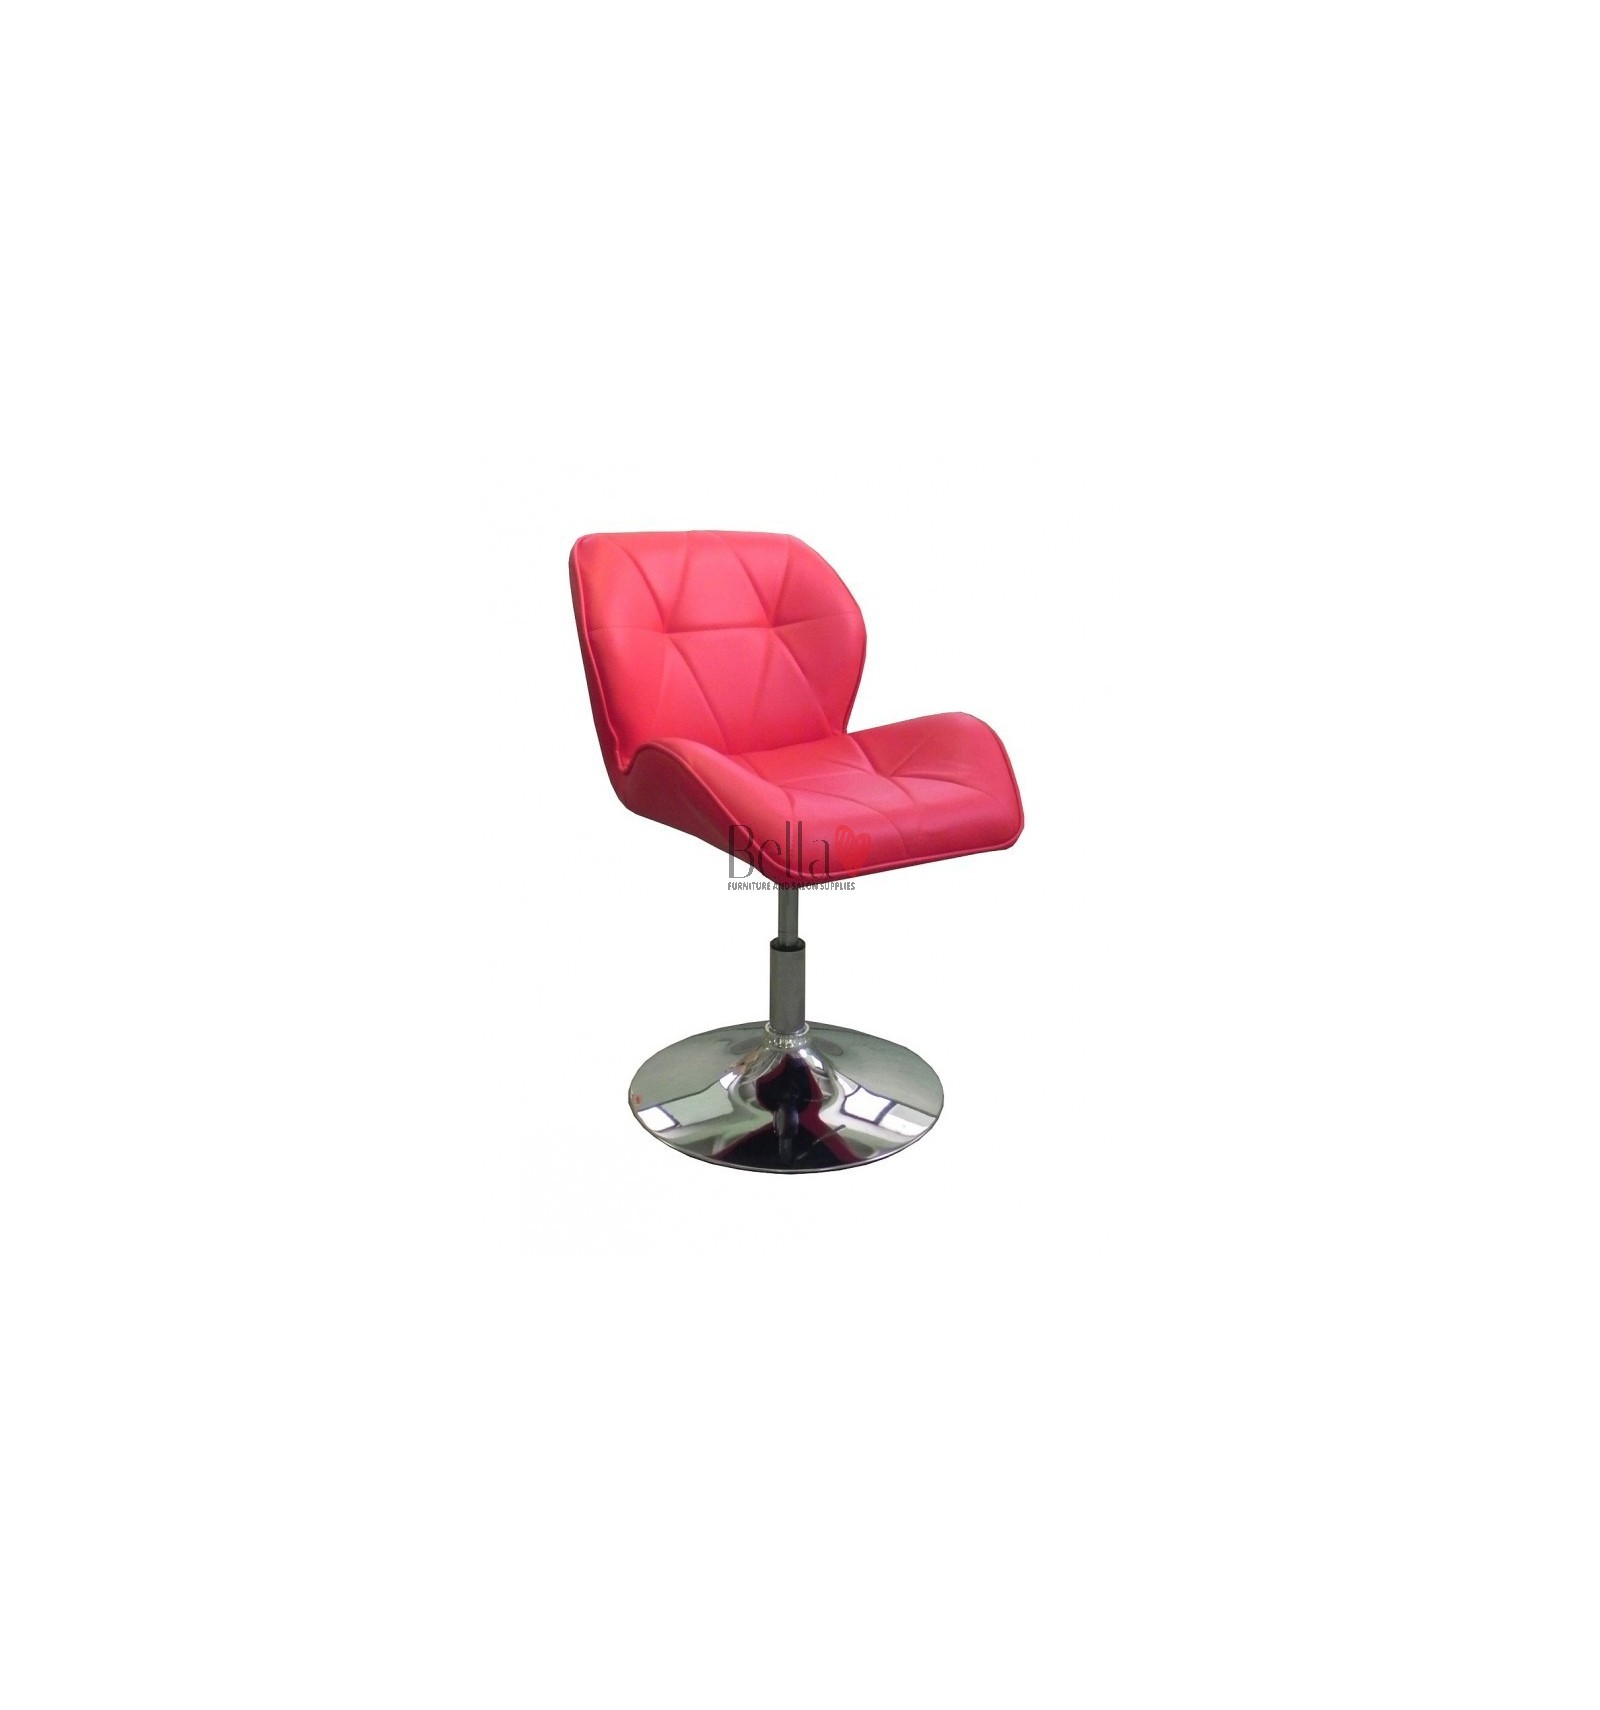 Red Salon Chairs Luxury Elegant And Stylish Red Chairs For Beauty And Nail